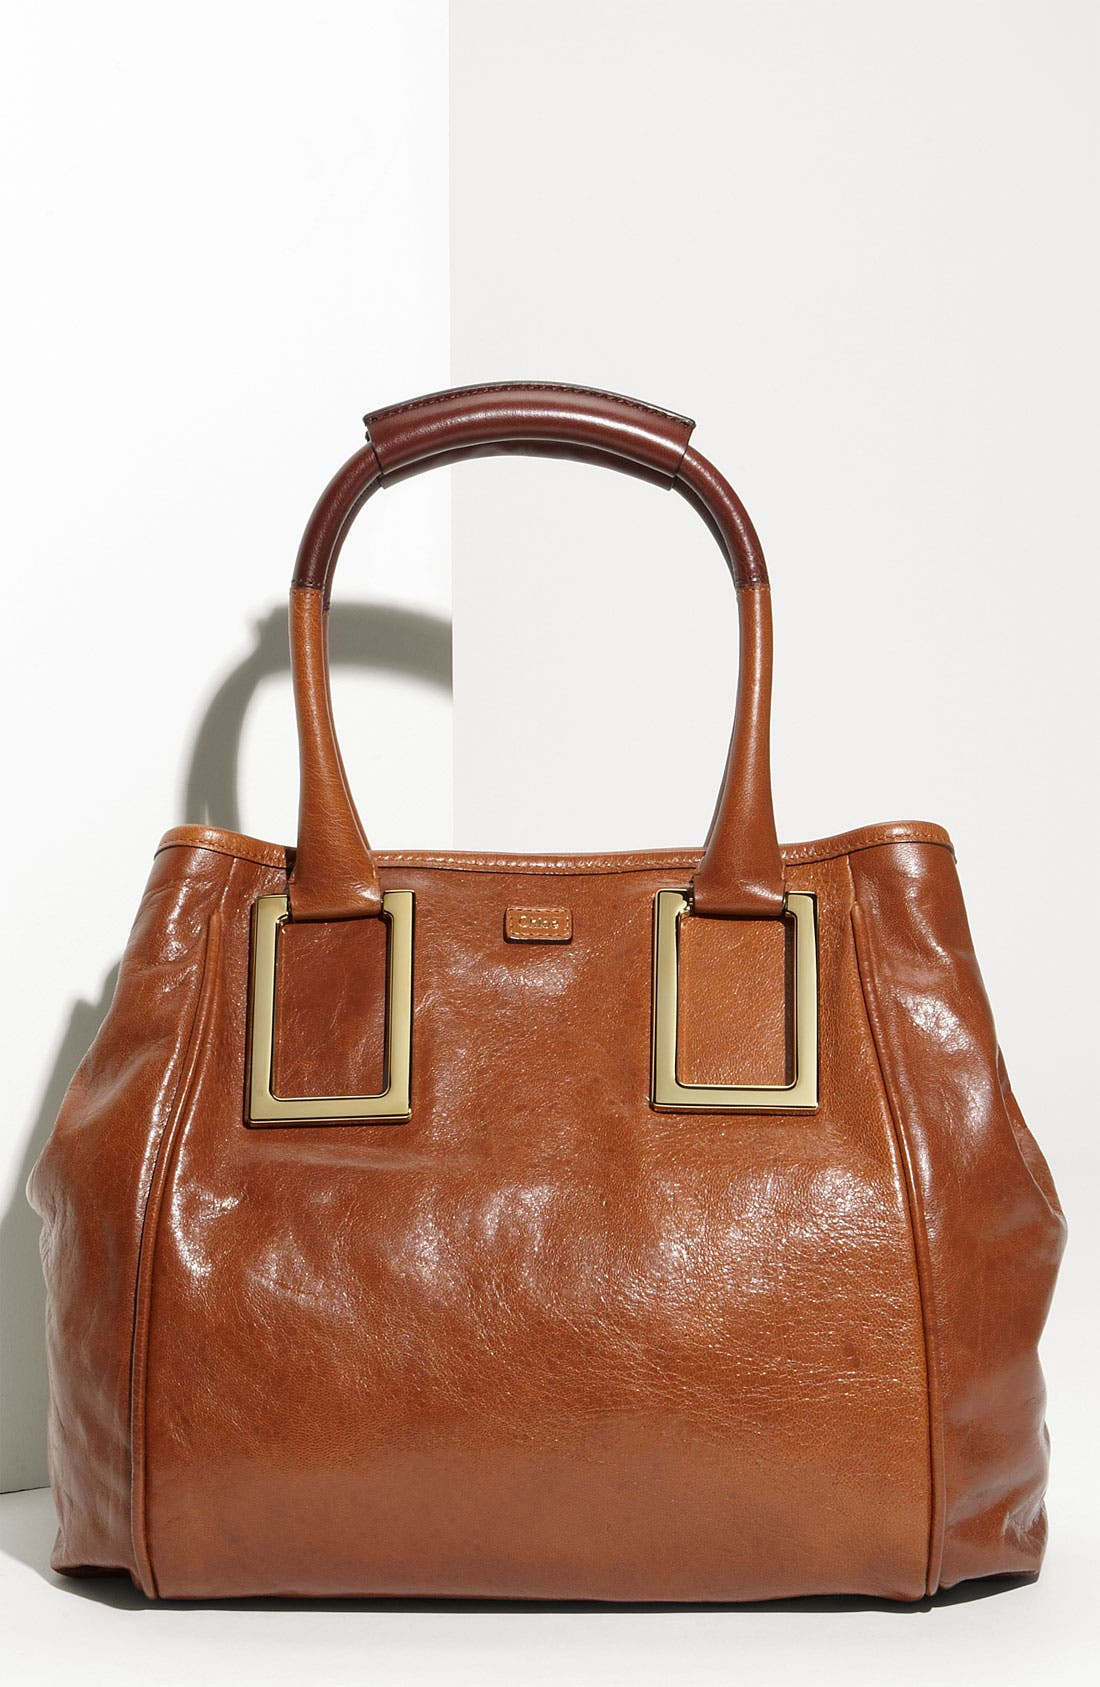 Alternate Image 1 Selected - Chloé 'Ethel - New' Leather Tote